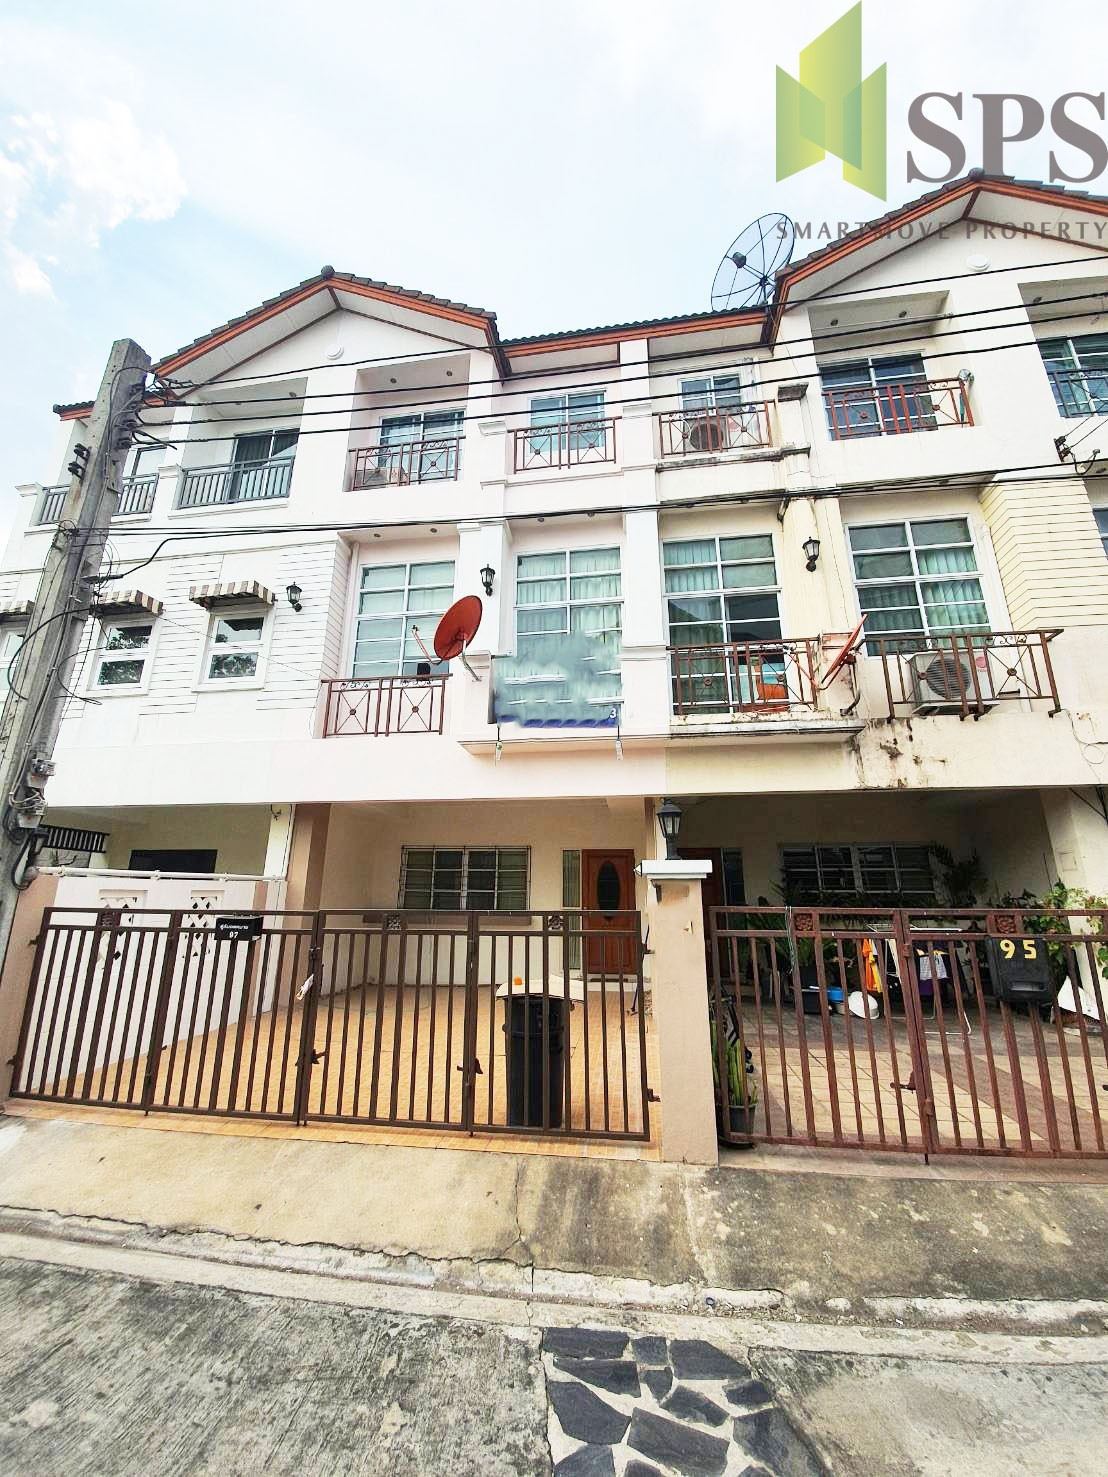 For Rent Town home only 500 Meter from BTS Onnut ( SPSPE344)